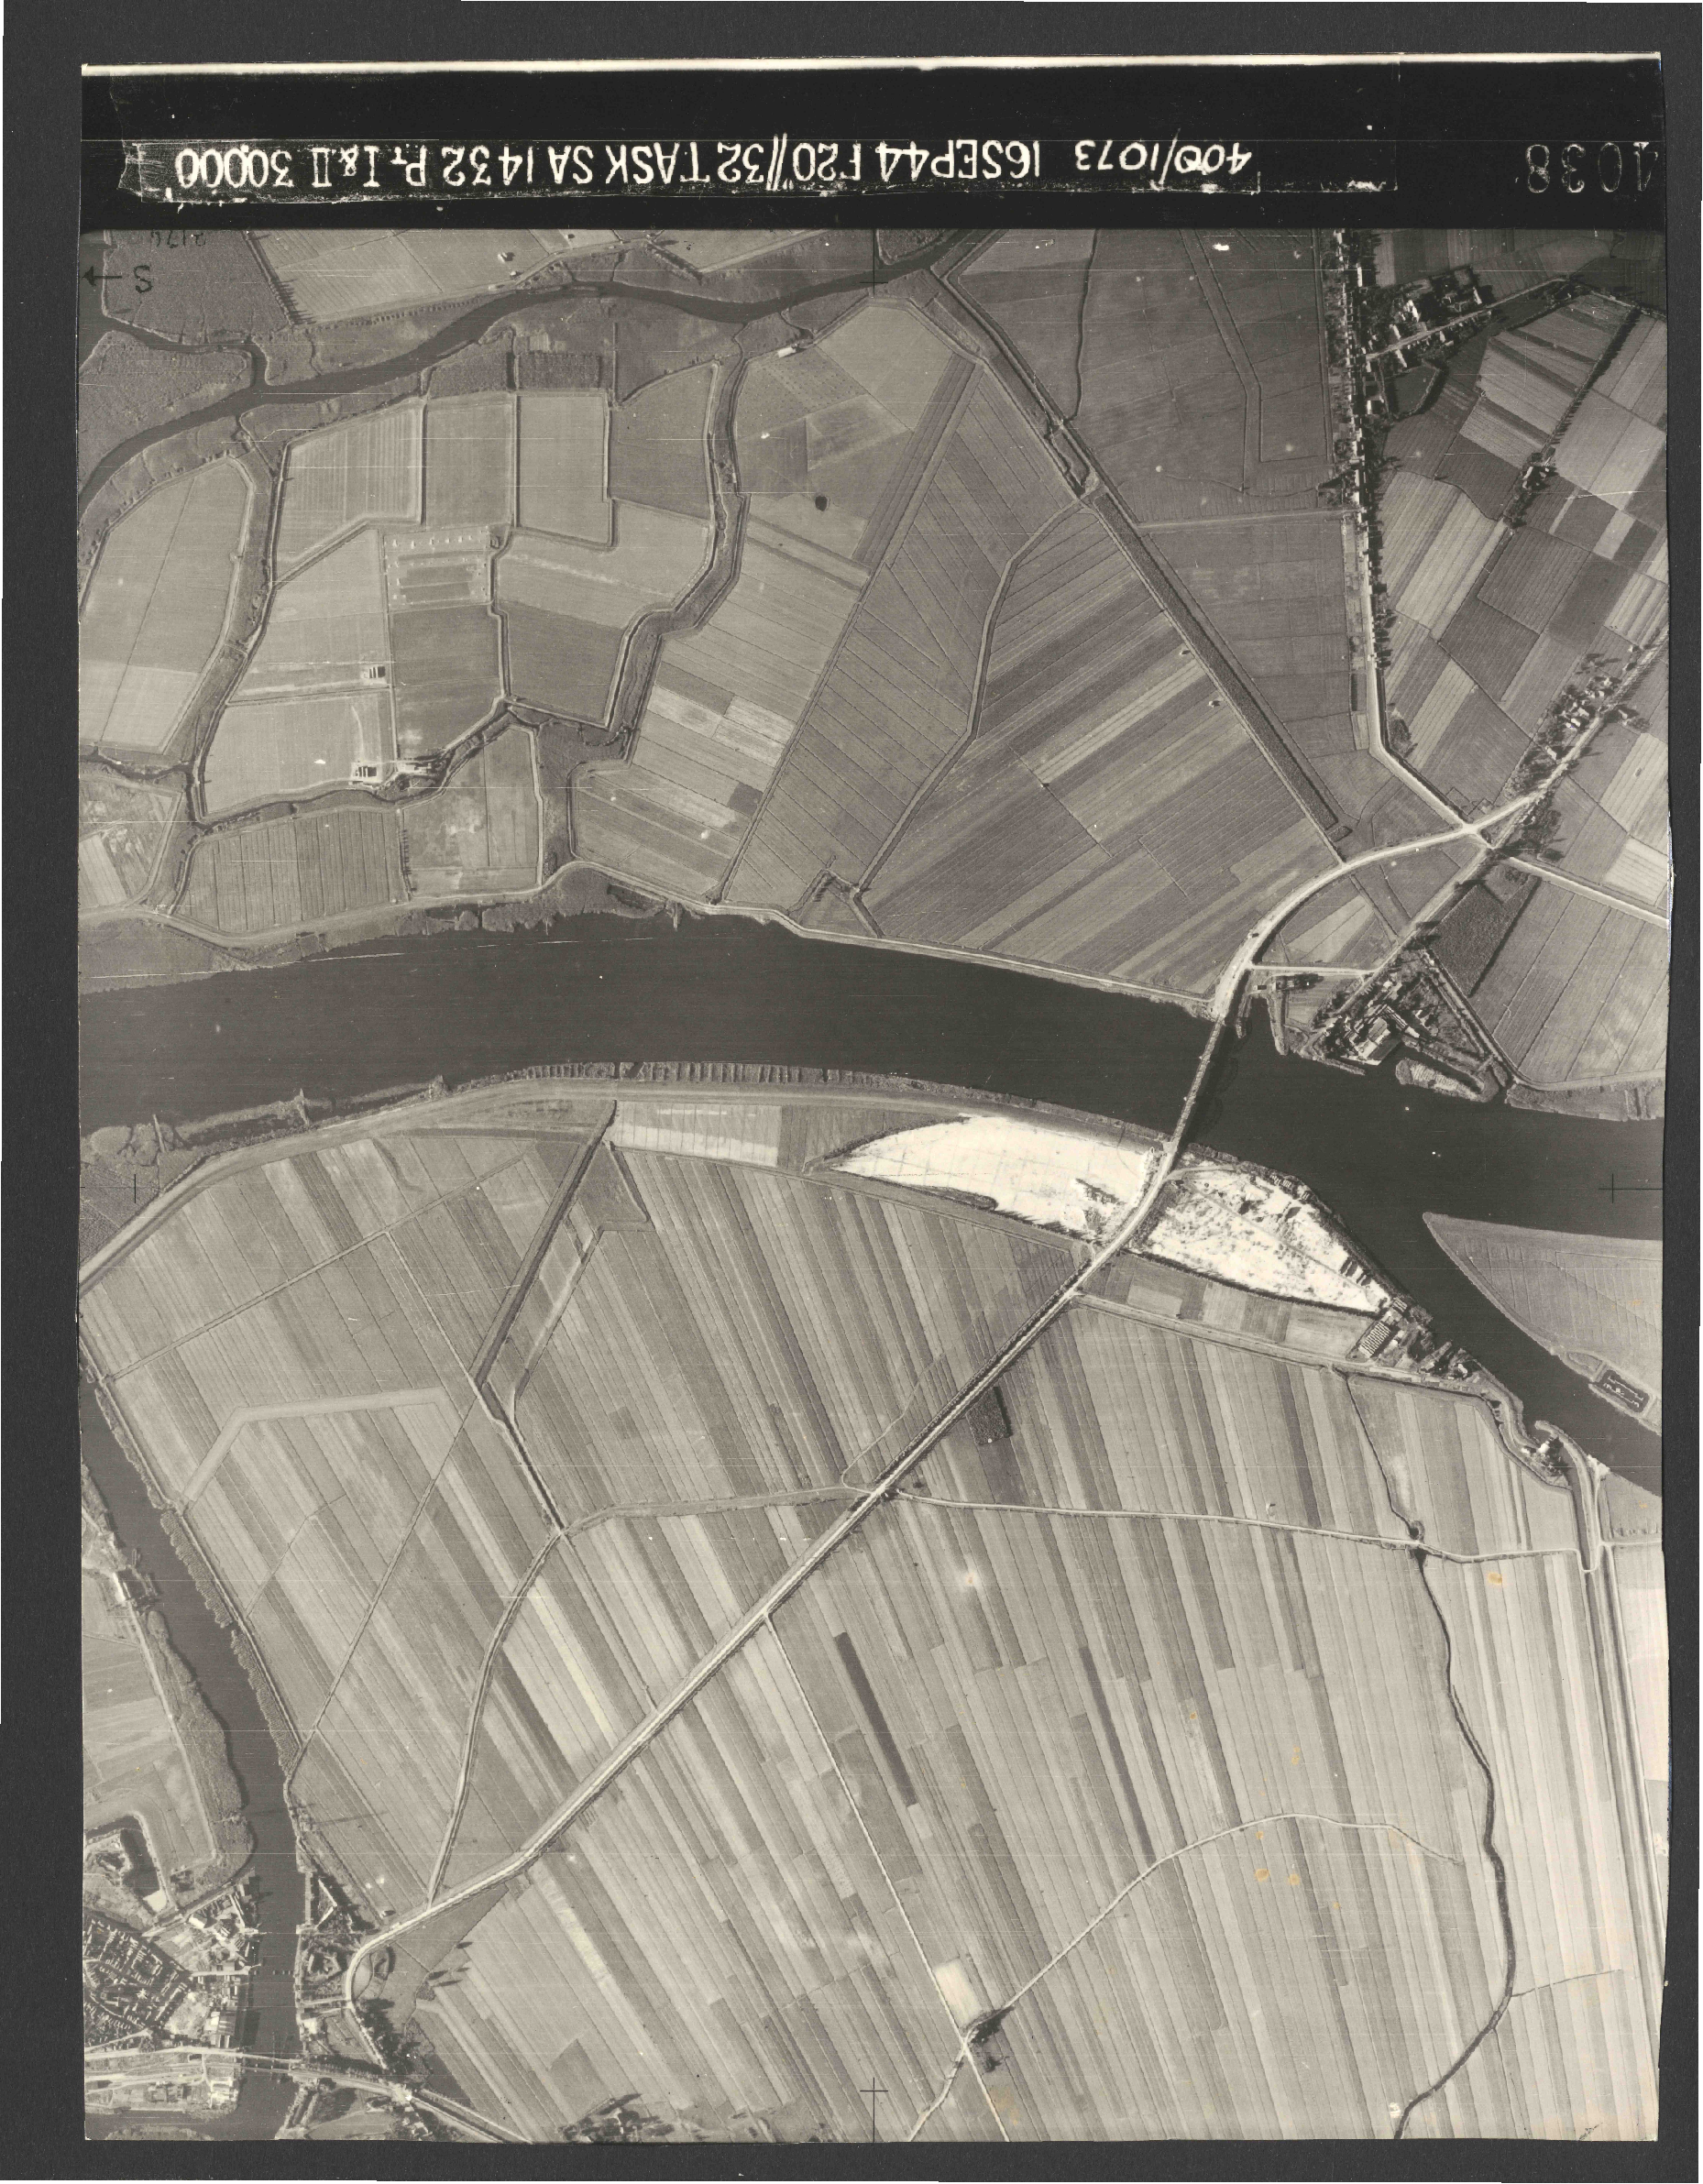 Collection RAF aerial photos 1940-1945 - flight 013, run 06, photo 4038